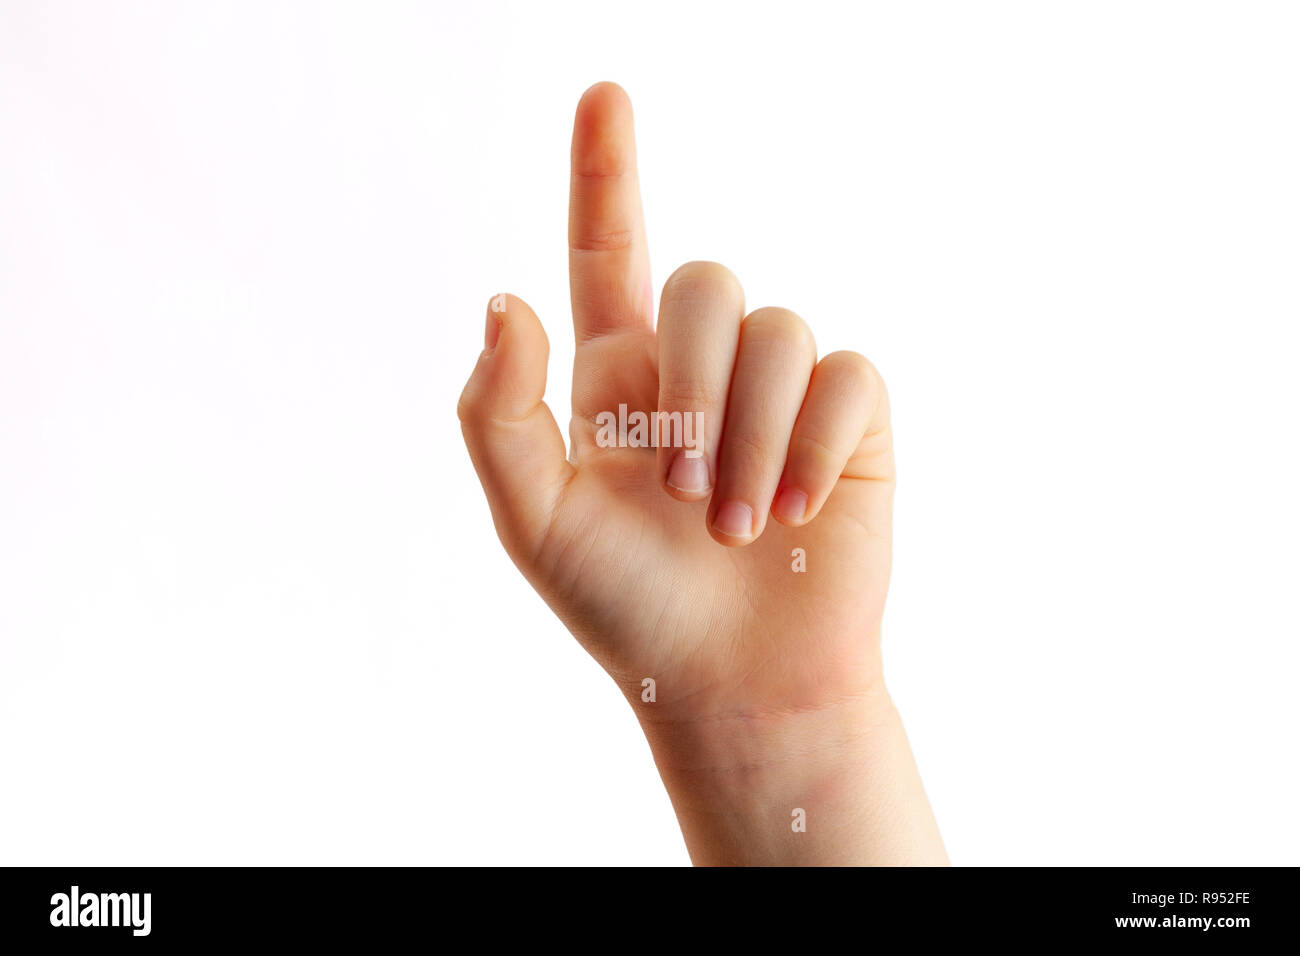 Child right hand tapping with index finger closeup - isolated on white background - Stock Image